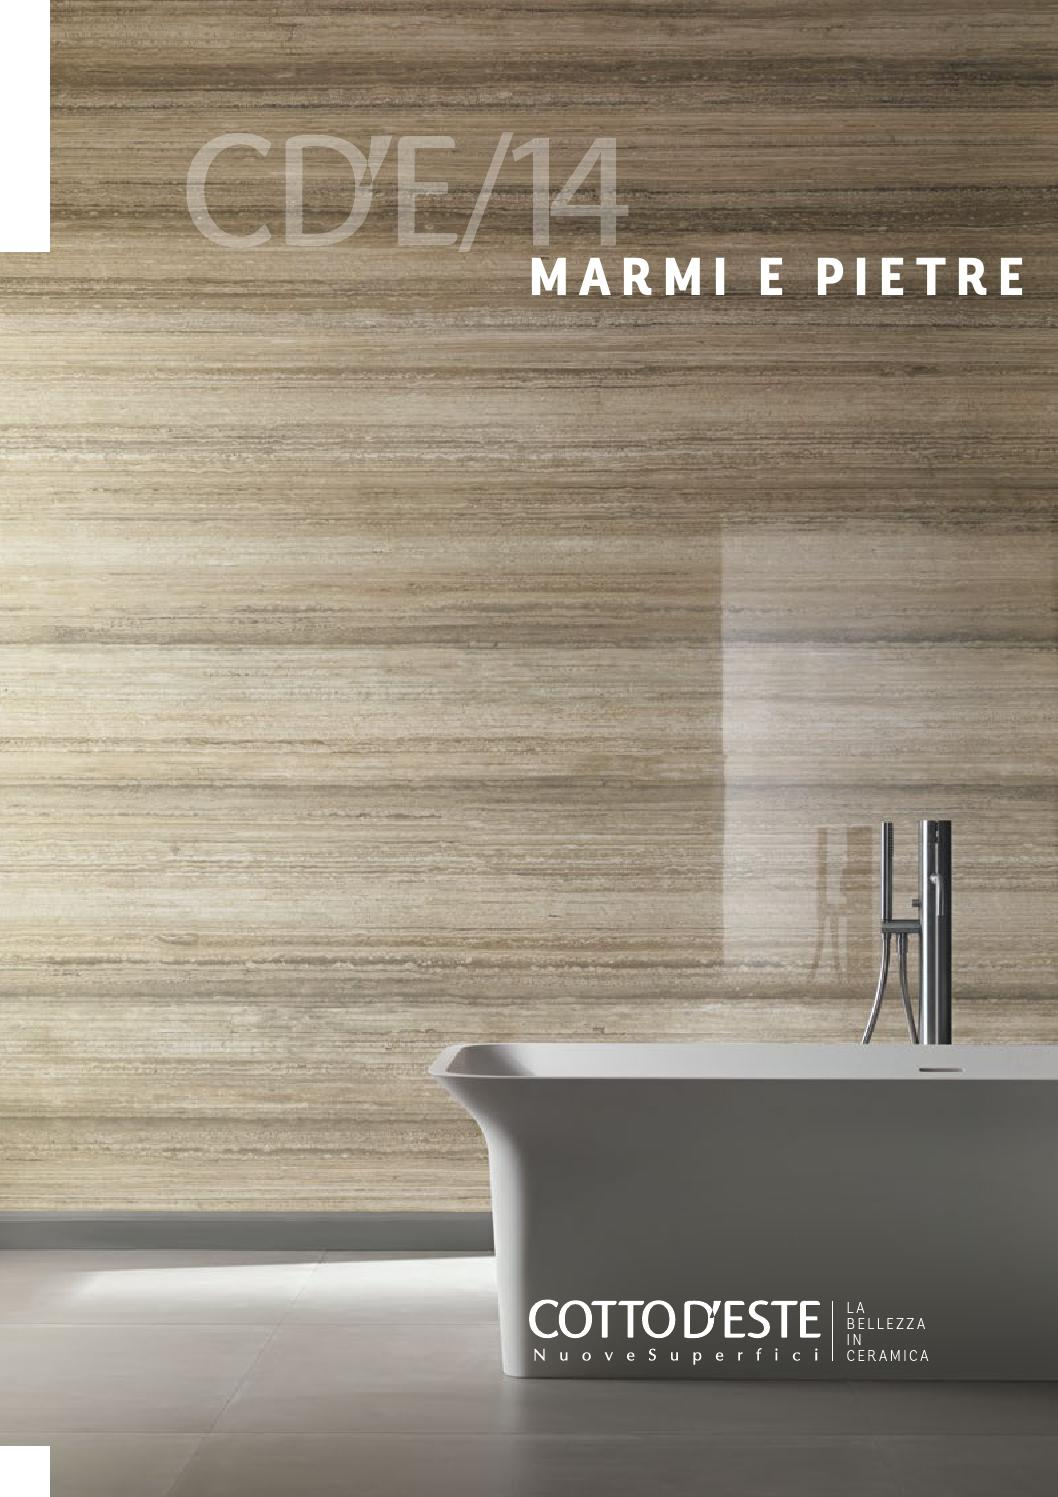 cotto d 39 este catalogue 2014 marmi e pietre by udele tile issuu. Black Bedroom Furniture Sets. Home Design Ideas